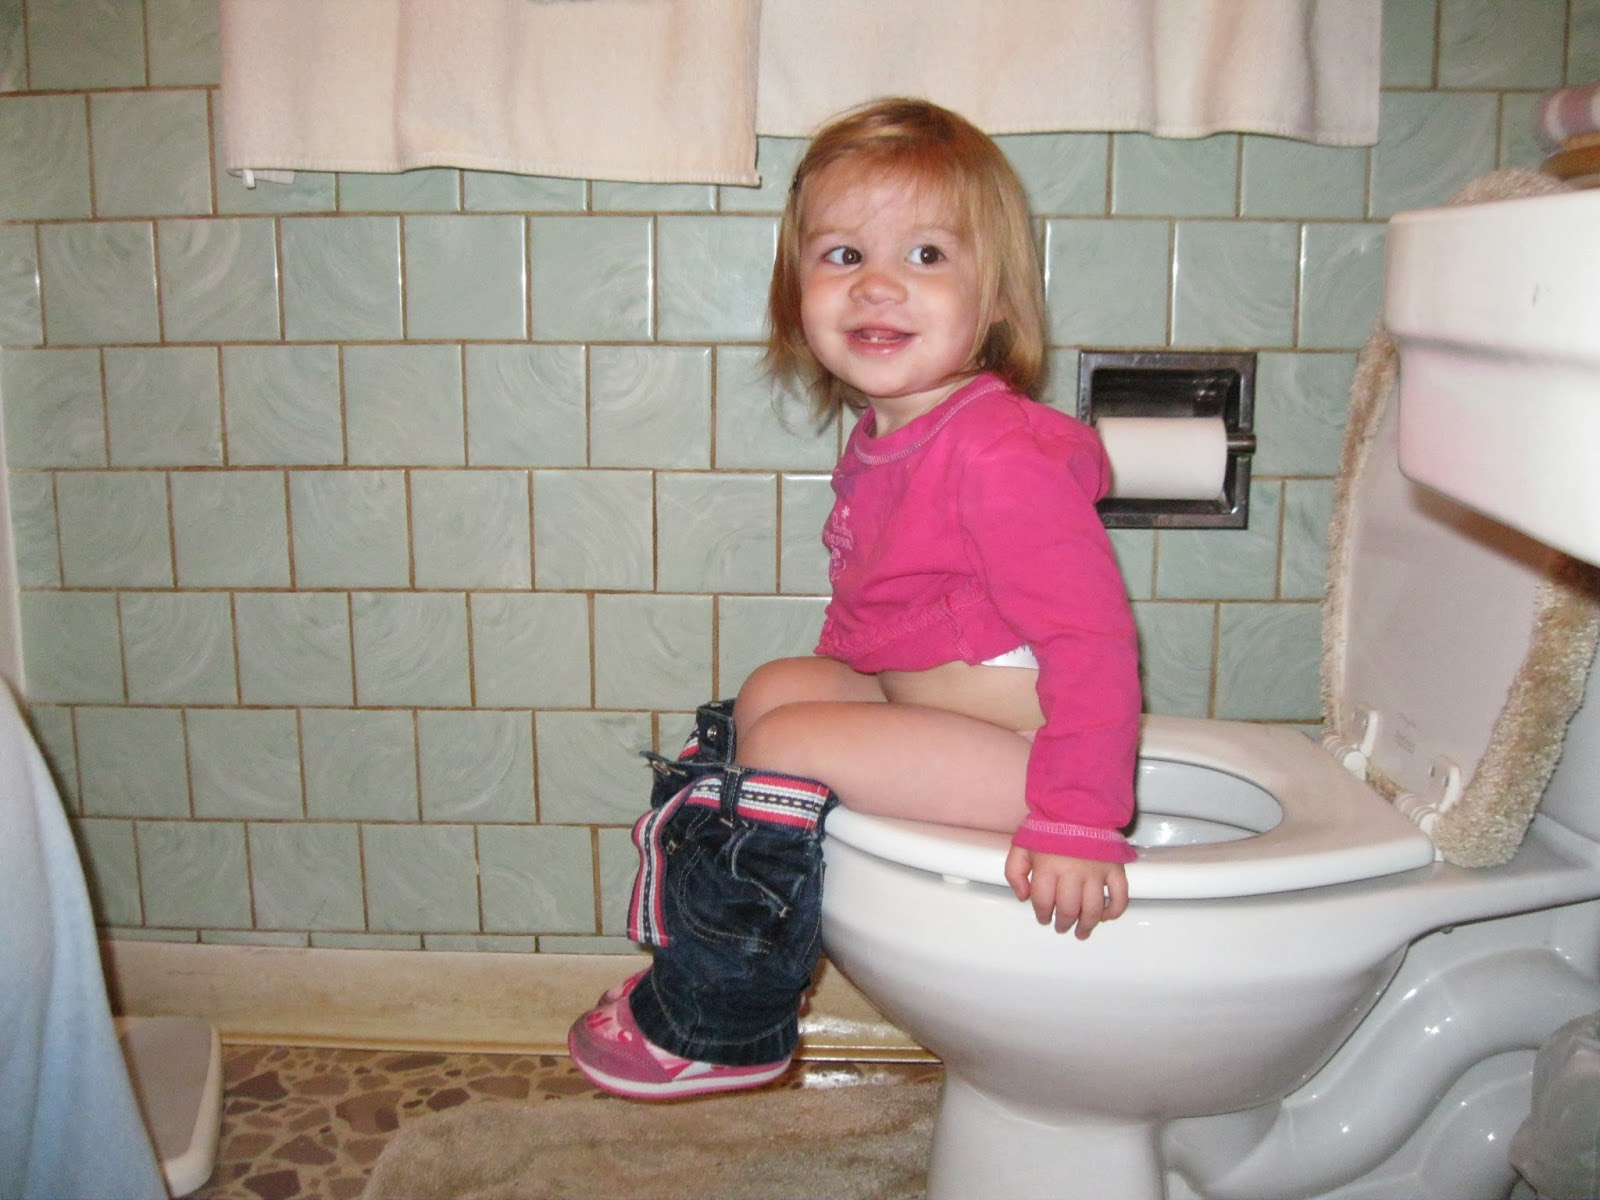 Chaotic Kids & Clutter: The Trickle-Down Theory of Parenting Dakota Fanning Period